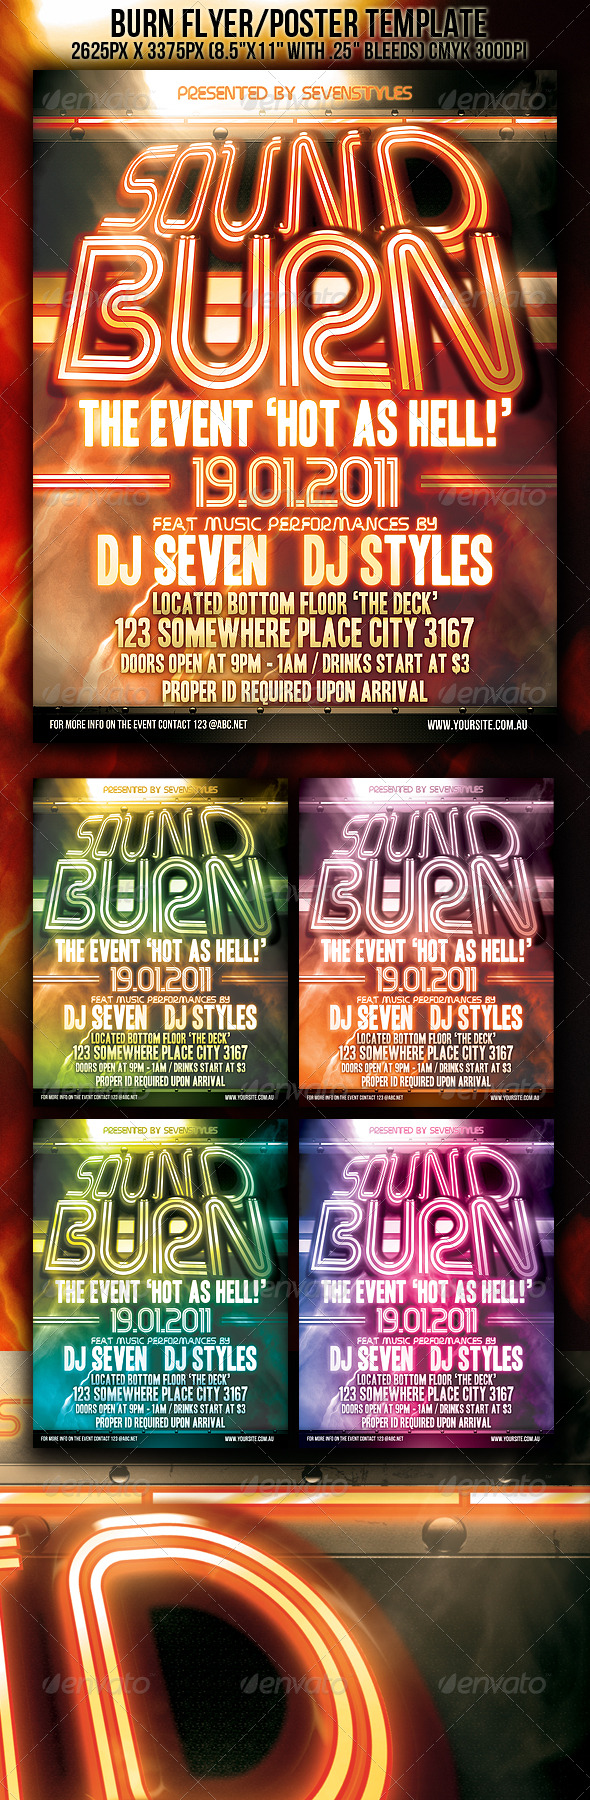 GraphicRiver Sound Burn Flyer Poster Template 149707